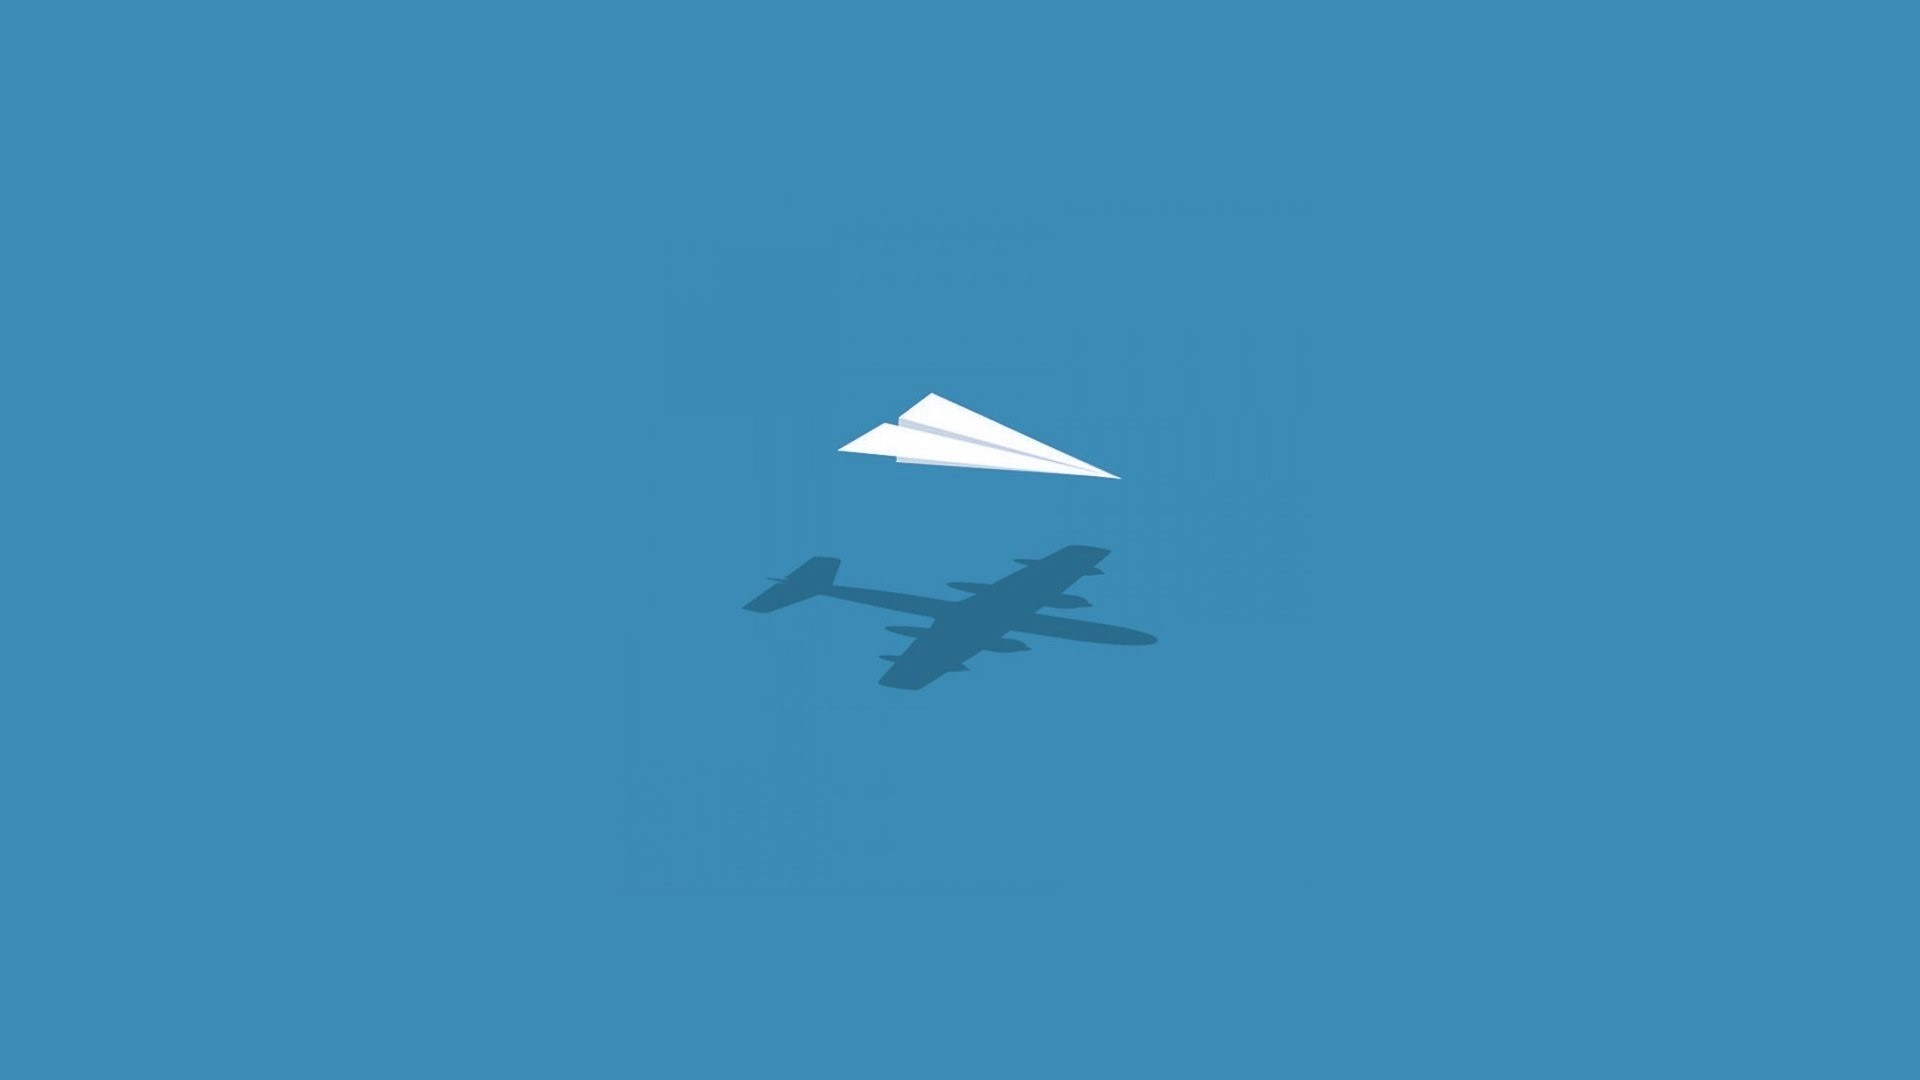 Airplane Minimalist desktop wallpaper hd